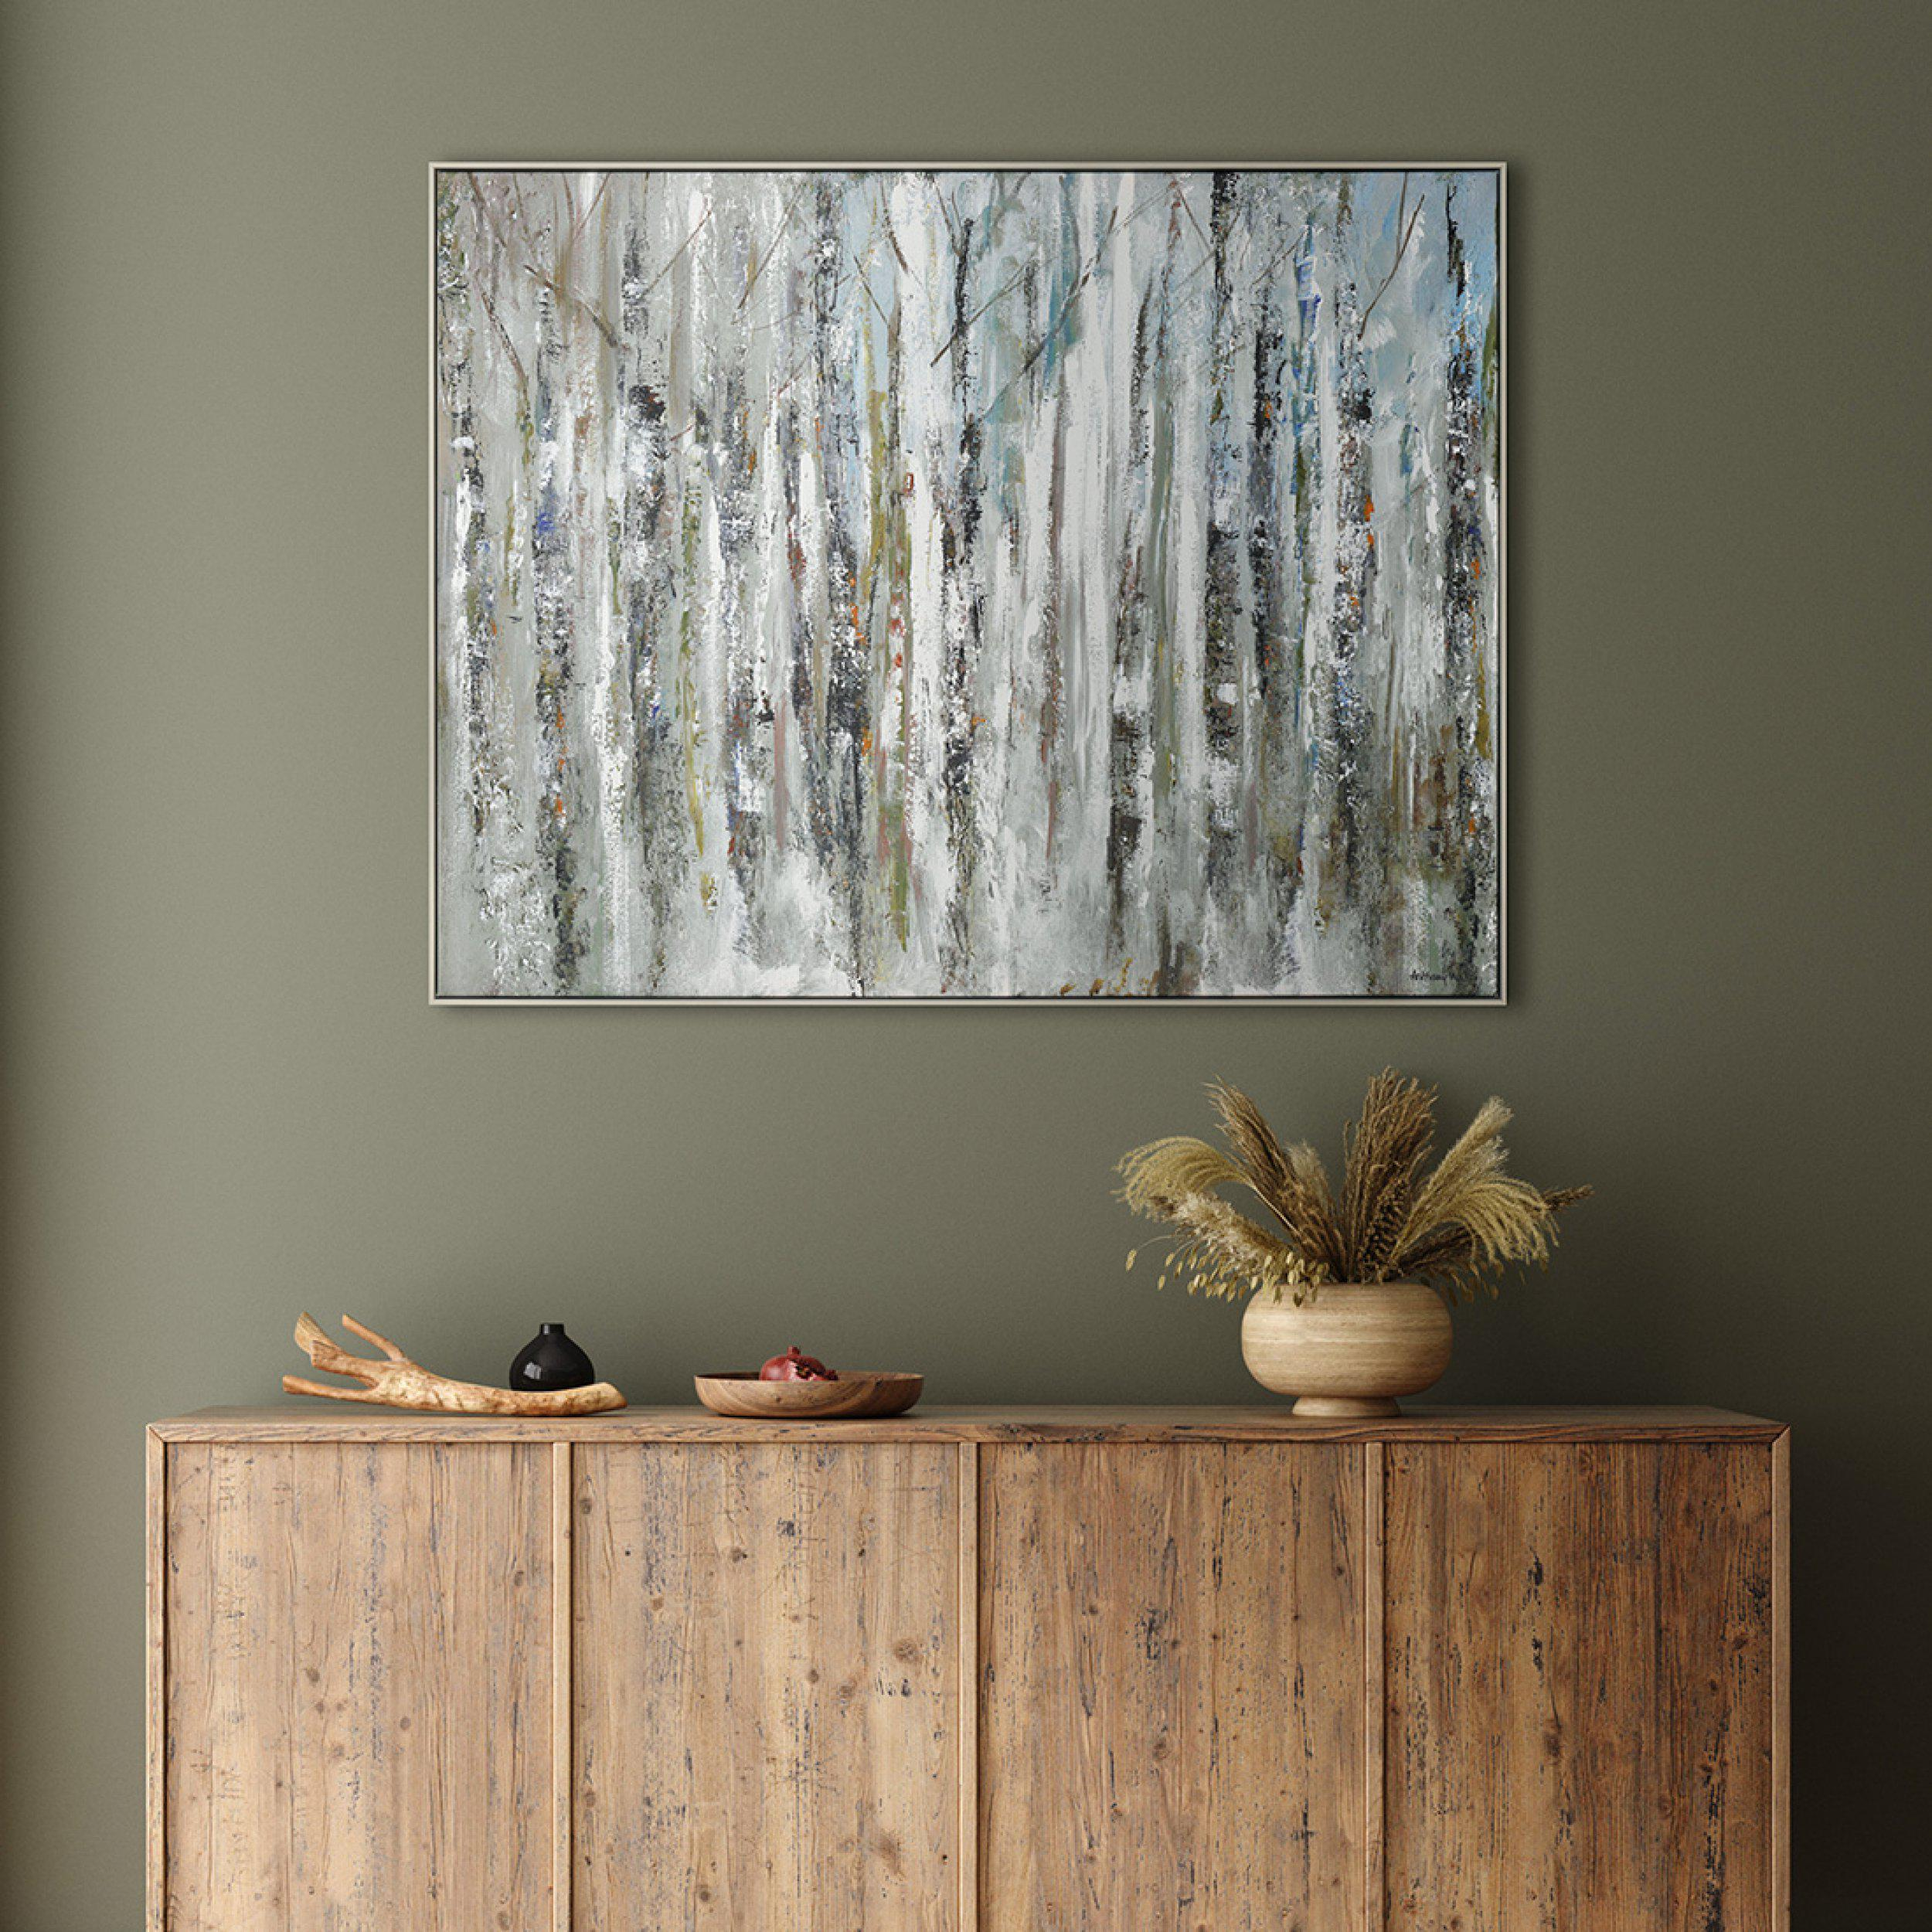 Art Gallery - Sunlit Birch Tree Forest Painting by Artist Anthony Waller - Framed Print For Sale - Room Display